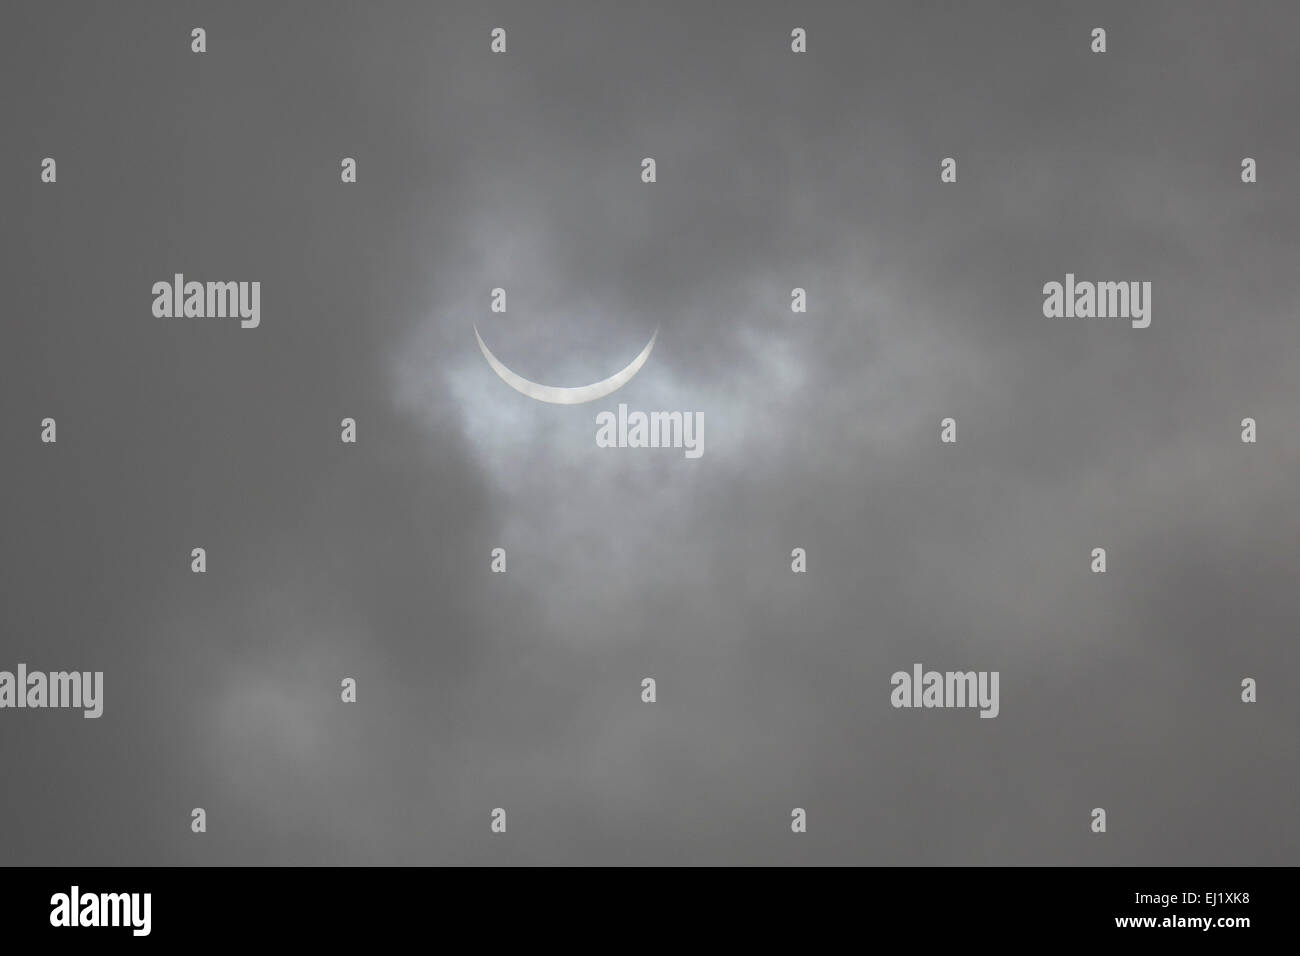 The solar eclipse in Sunderland, England. Grey clouds obscure the view of the sun. Credit:  Stuart Forster/Alamy - Stock Image